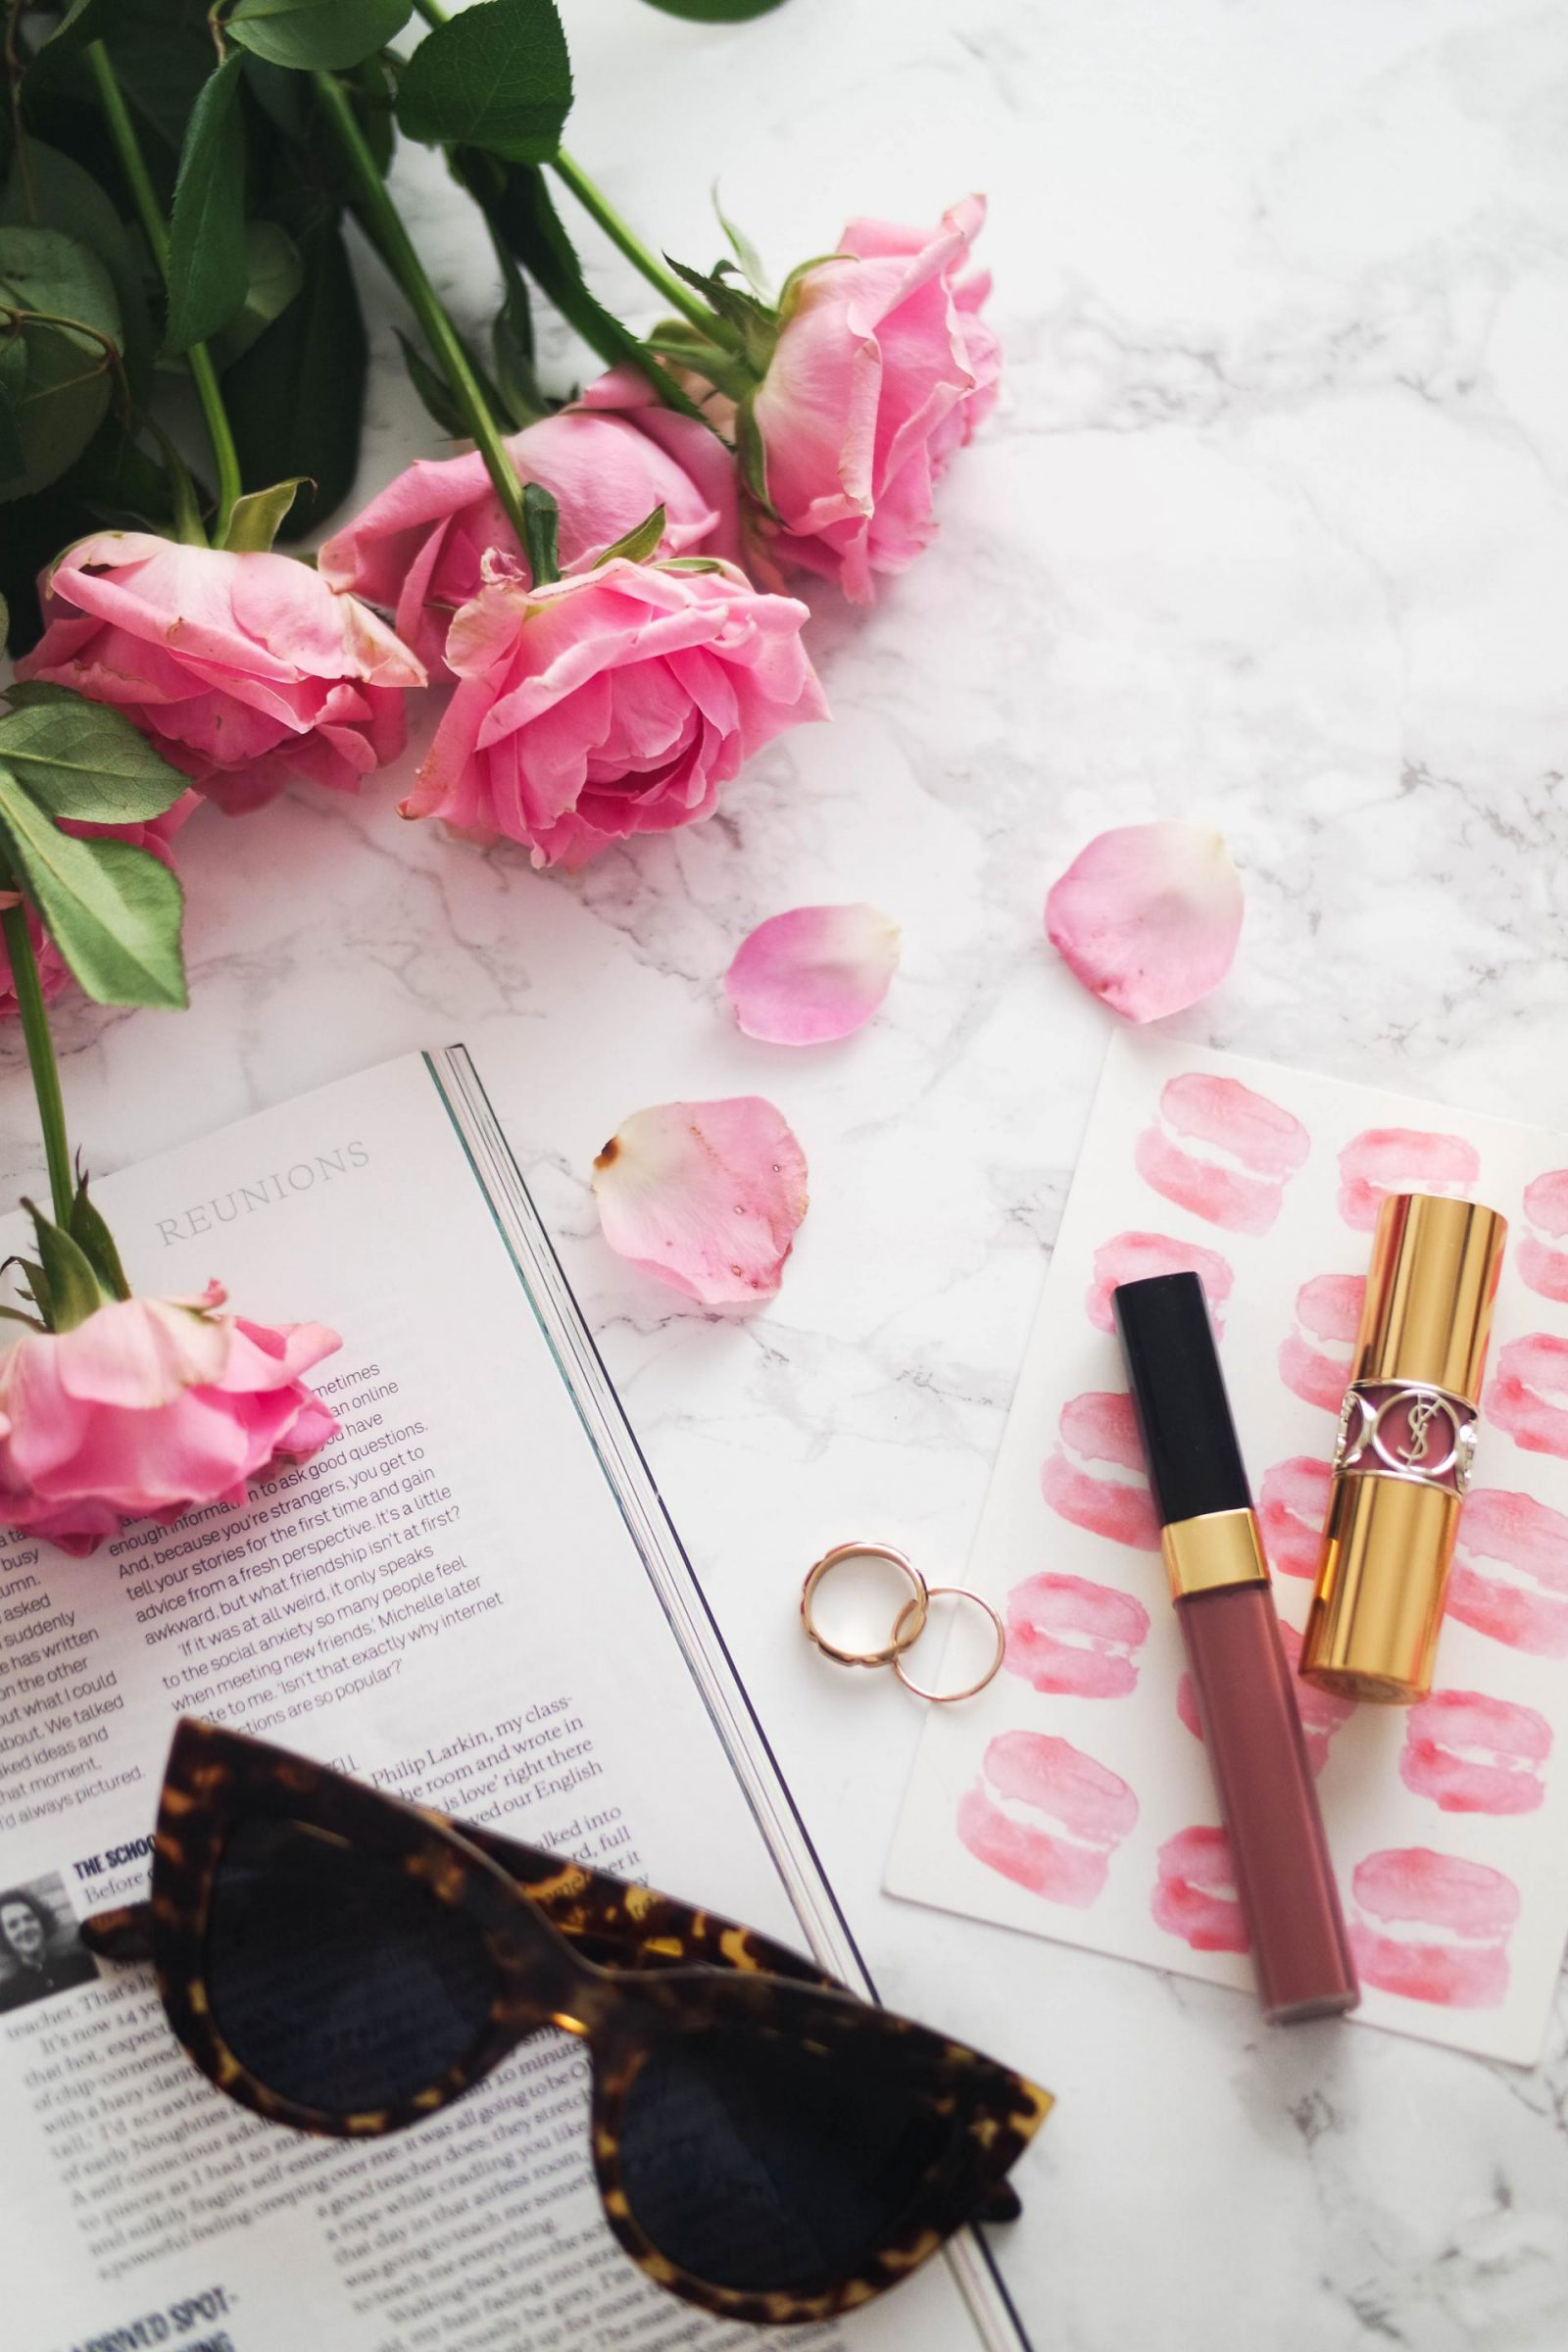 mindfulness with a friend Chanel Lipgloss